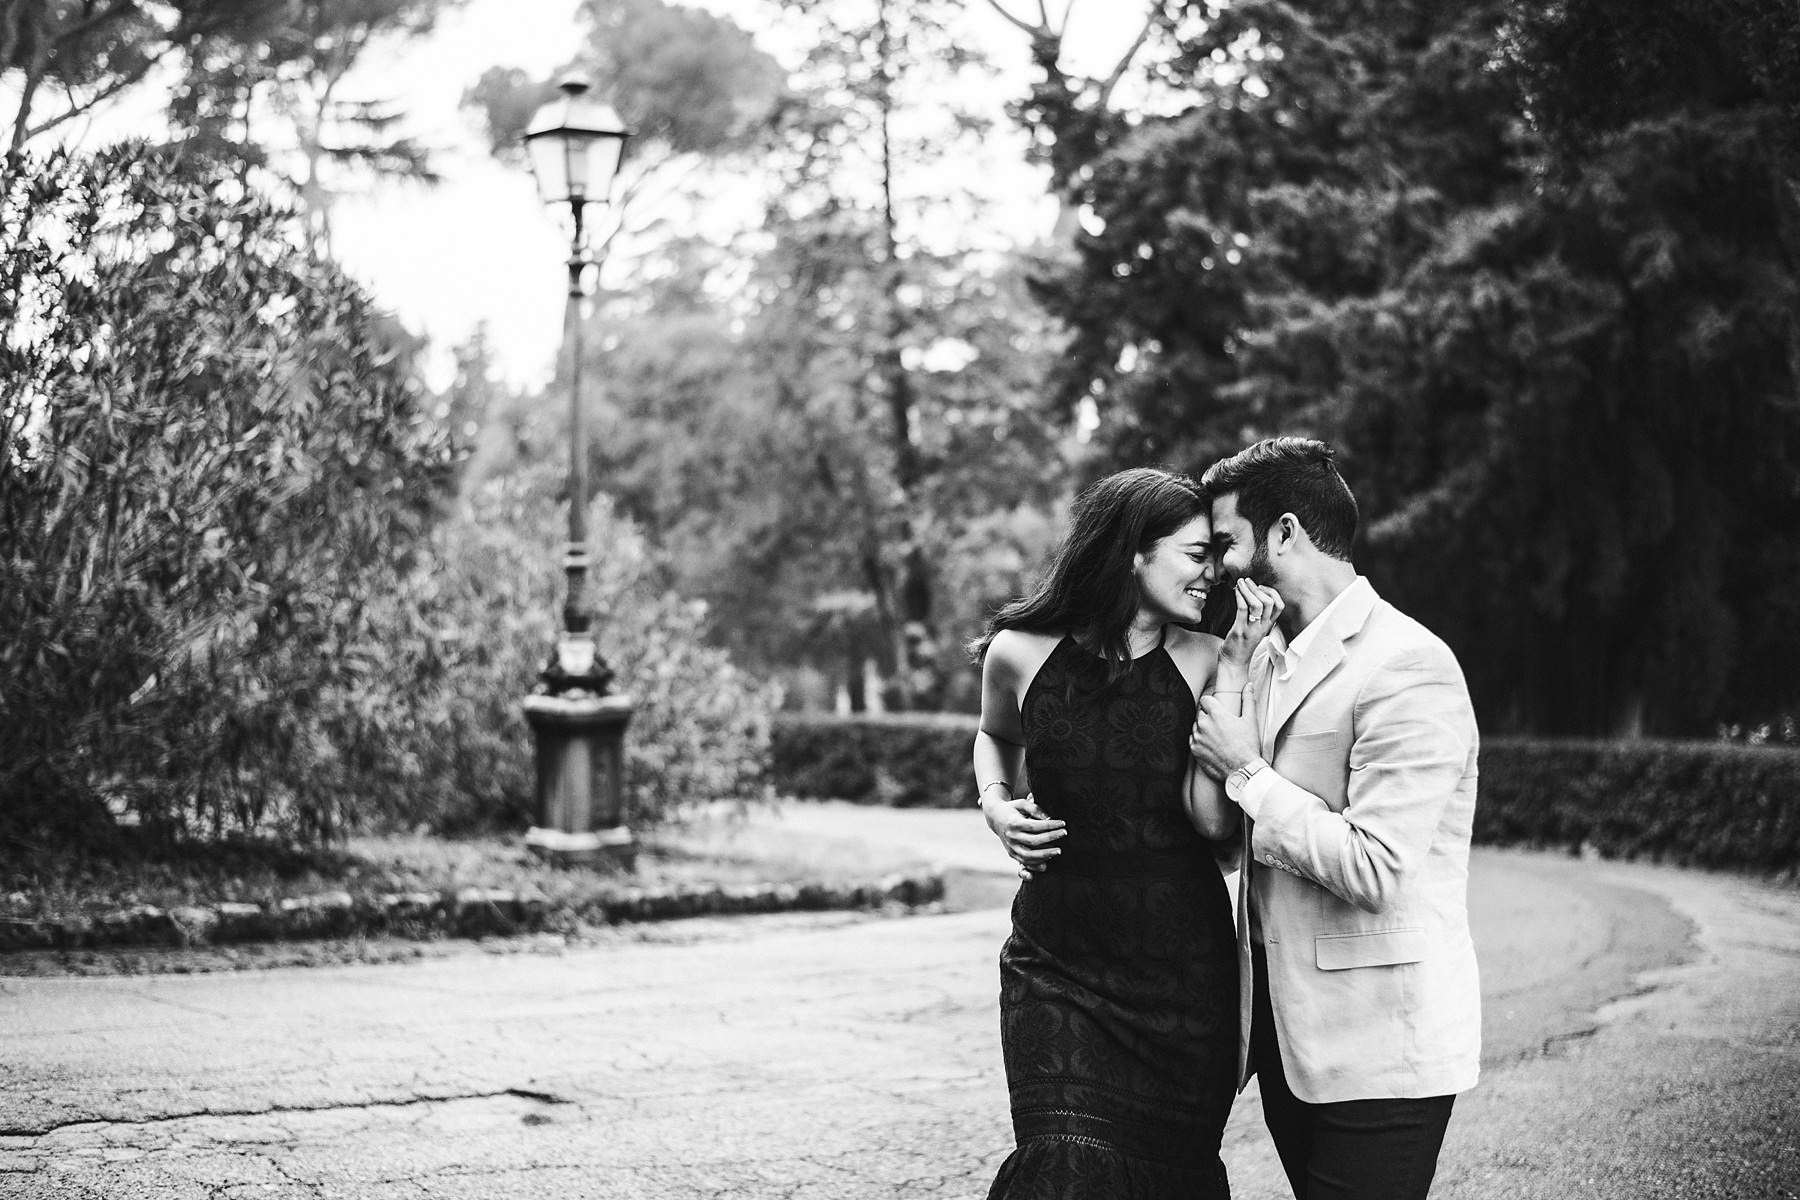 Have a great time with your fiancŽe with a Florence engagement pre wedding photo session